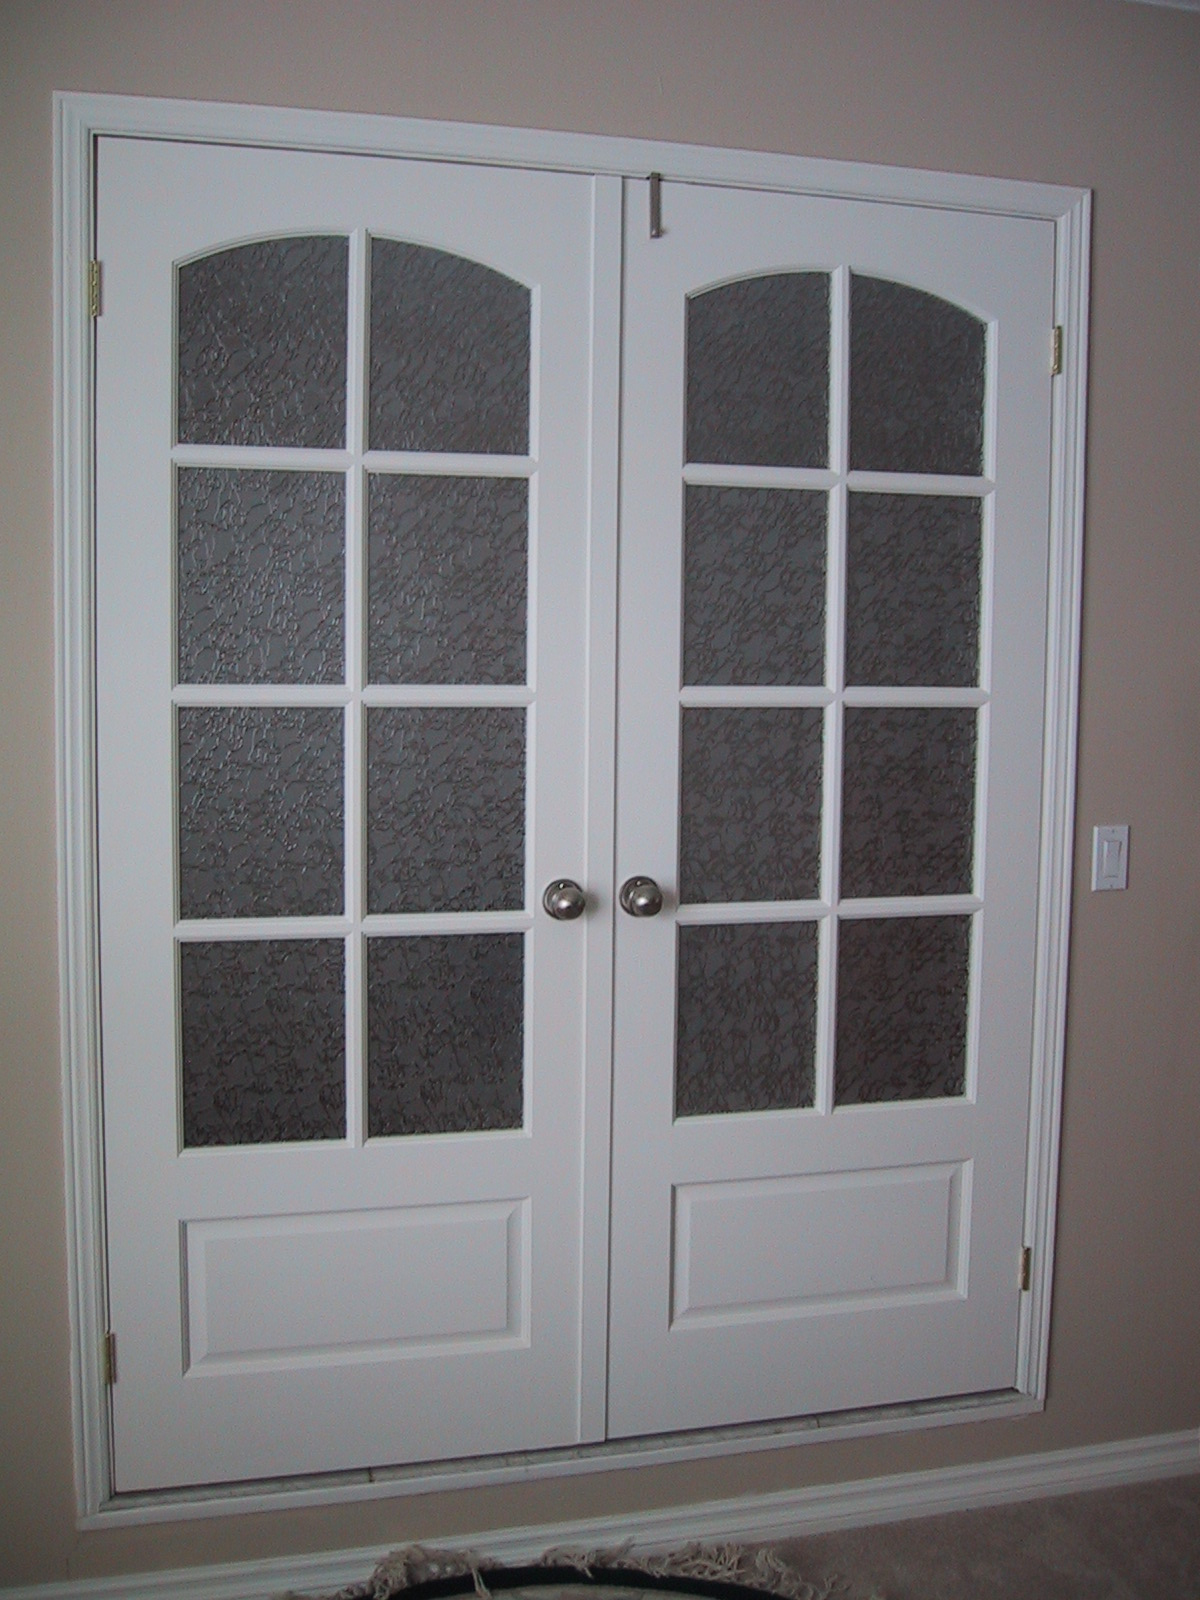 French Doors Home Depot | Home Depot Exterior French Doors | Homedepot French Doors